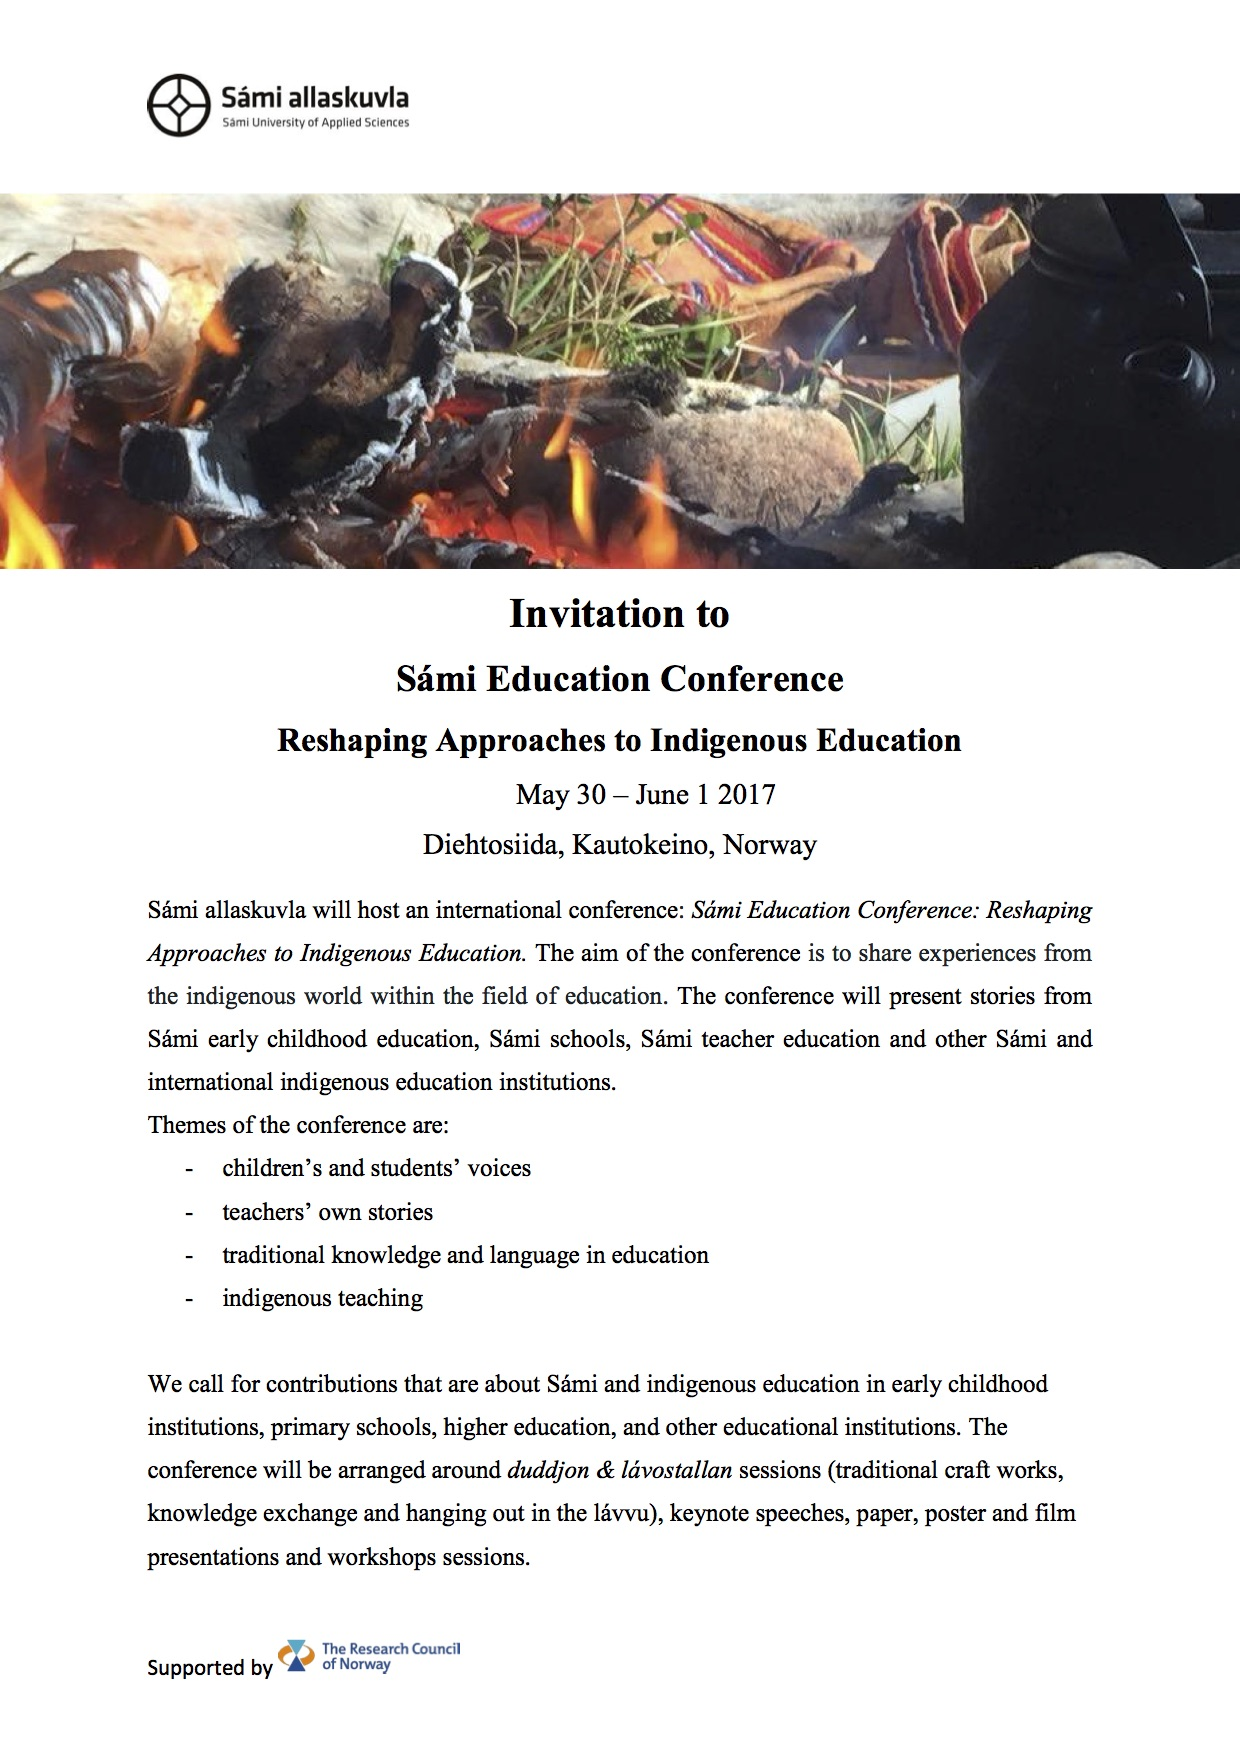 Invitation to Sámi Education Conference 2017 May 30 - June 1.jpg